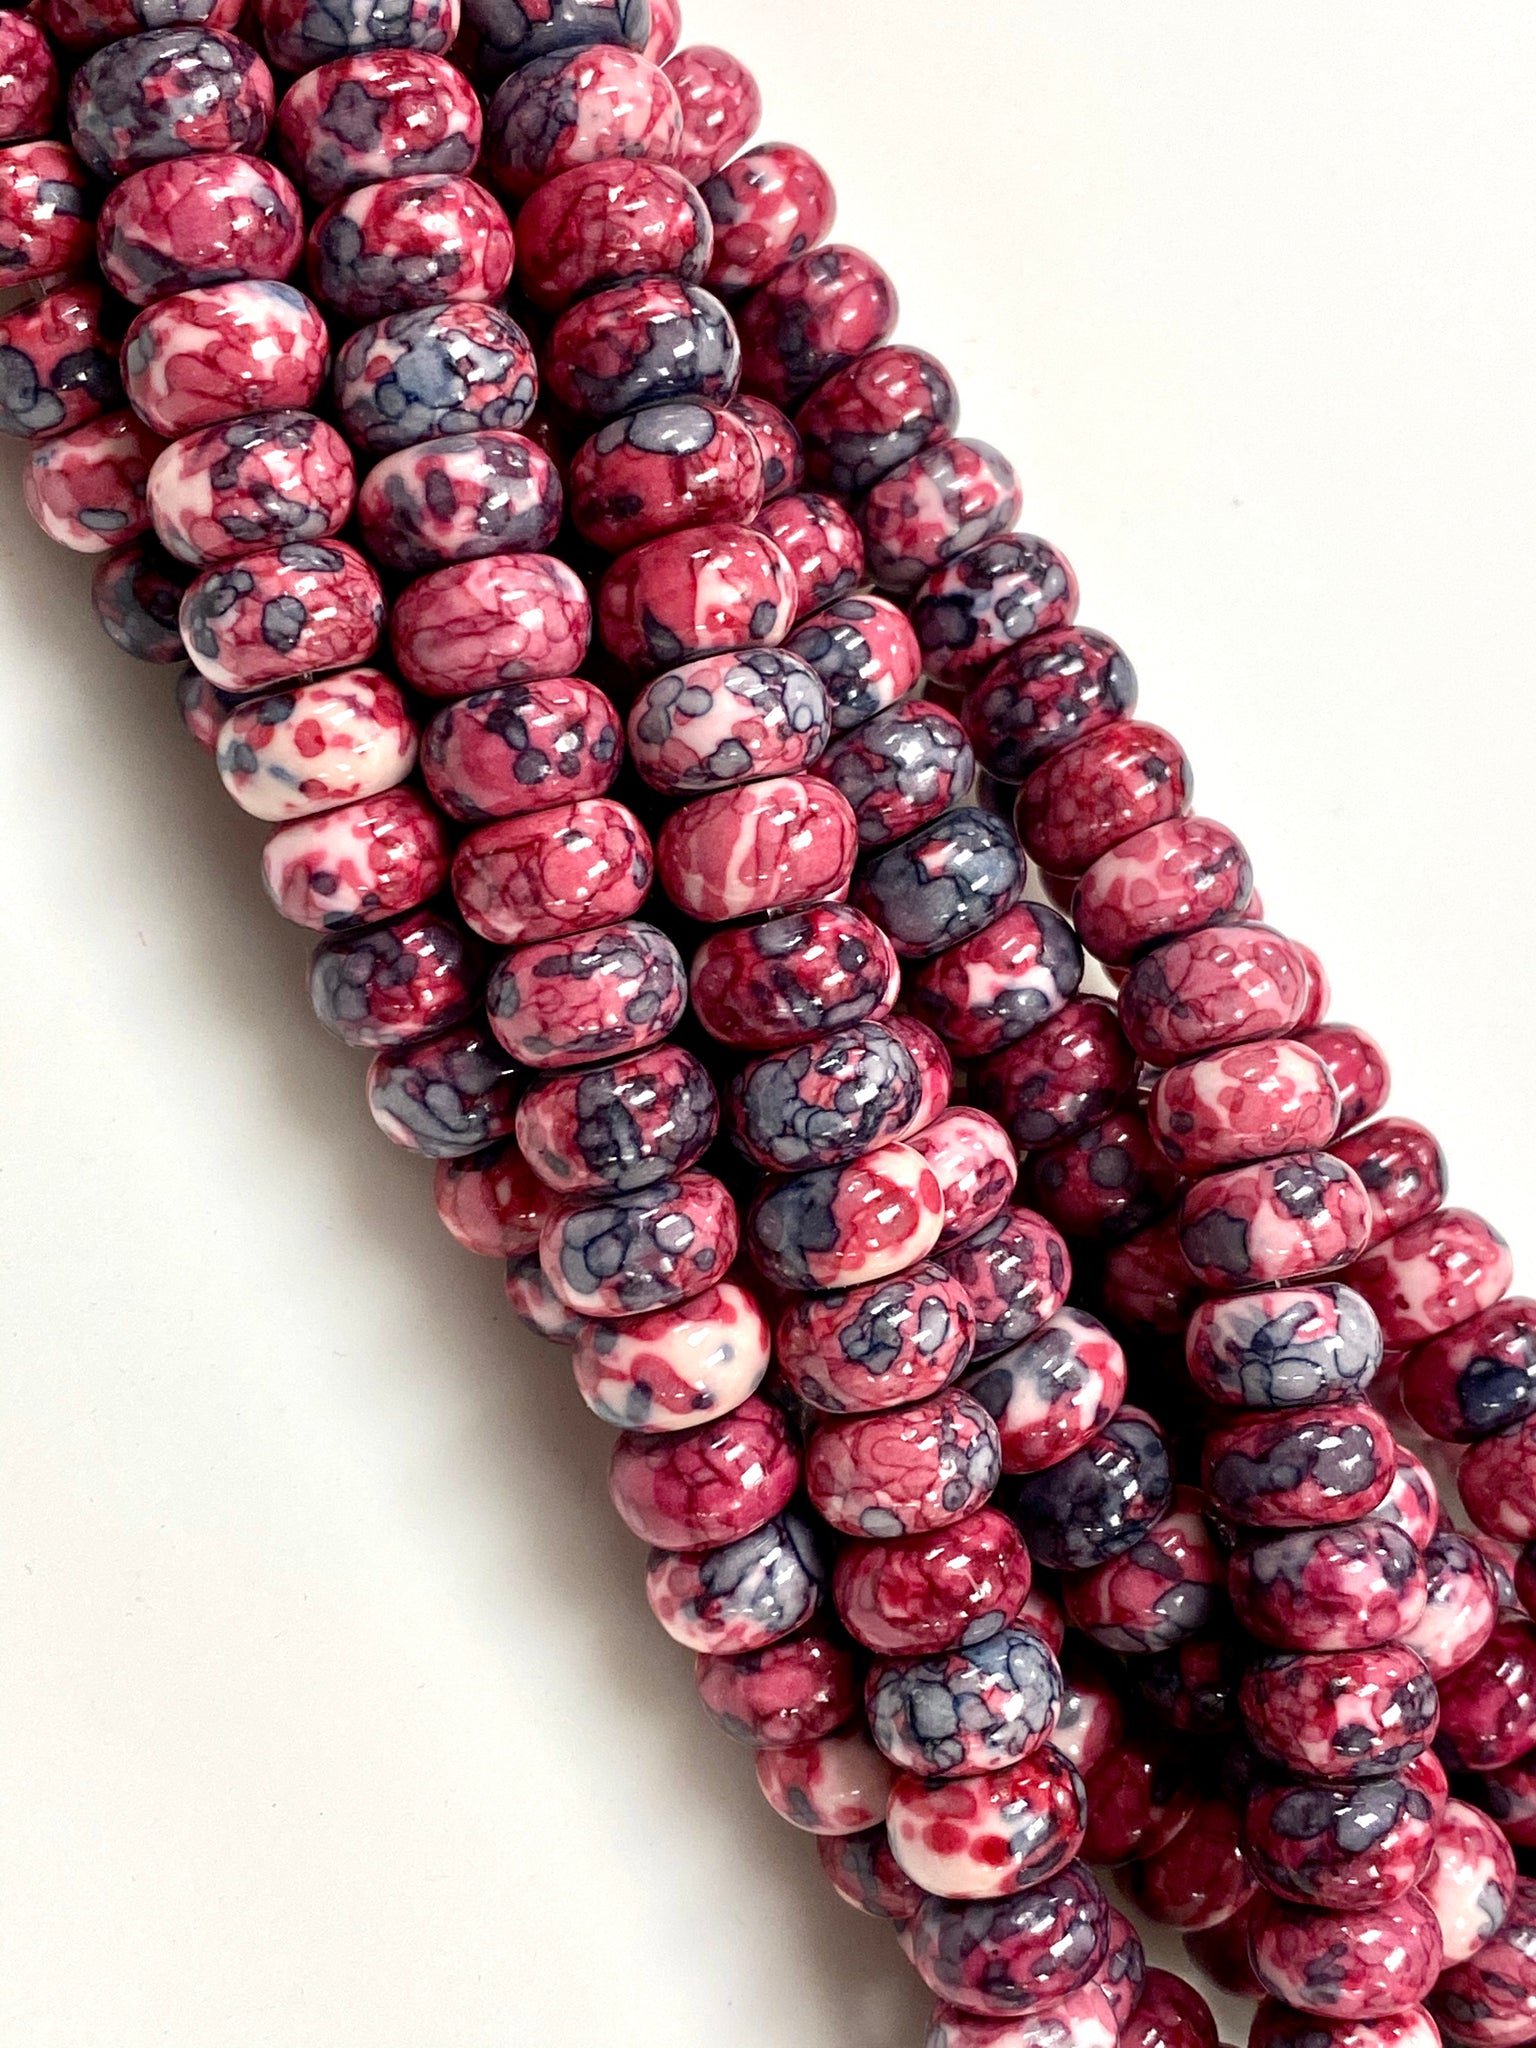 Natural Red Rain Jasper Gemstone Beads / Rondelle Shape Beads / Healing Energy Stone Beads / 10mm 2 Strands Beads